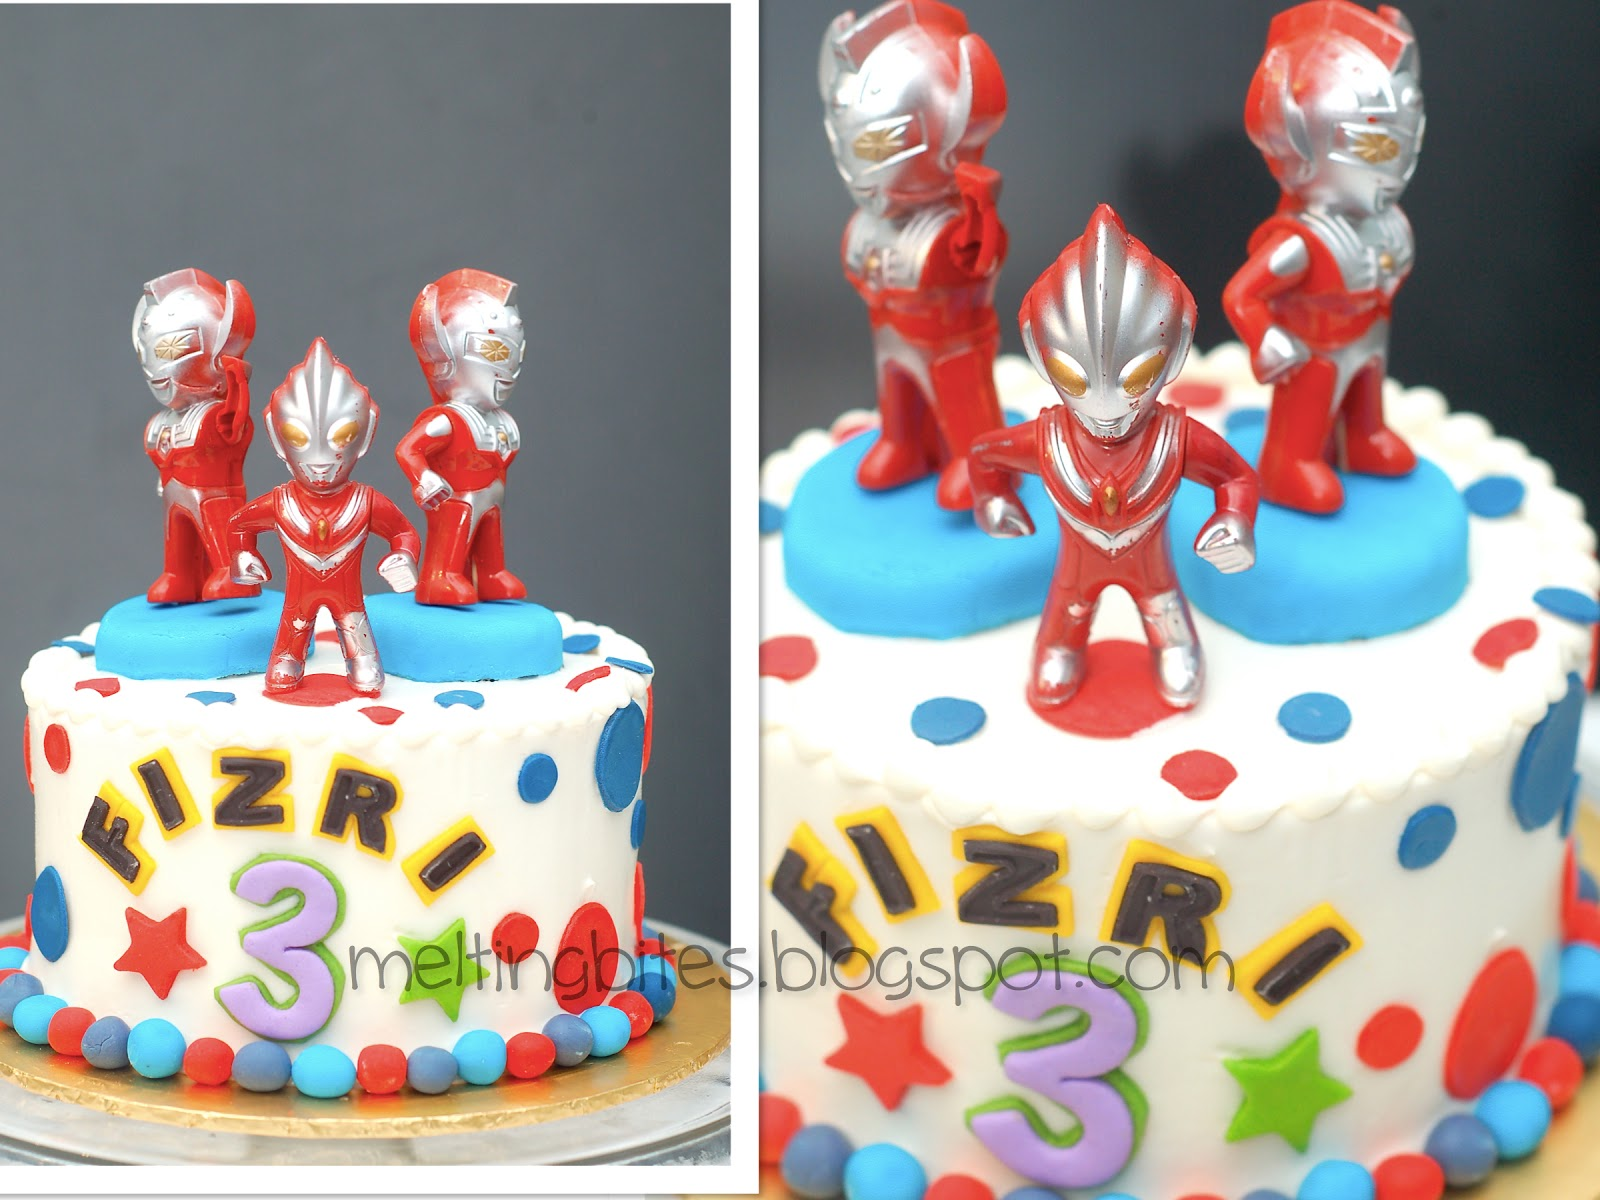 Melting Bites Something Sweet By MeltingBites Ultraman Cake